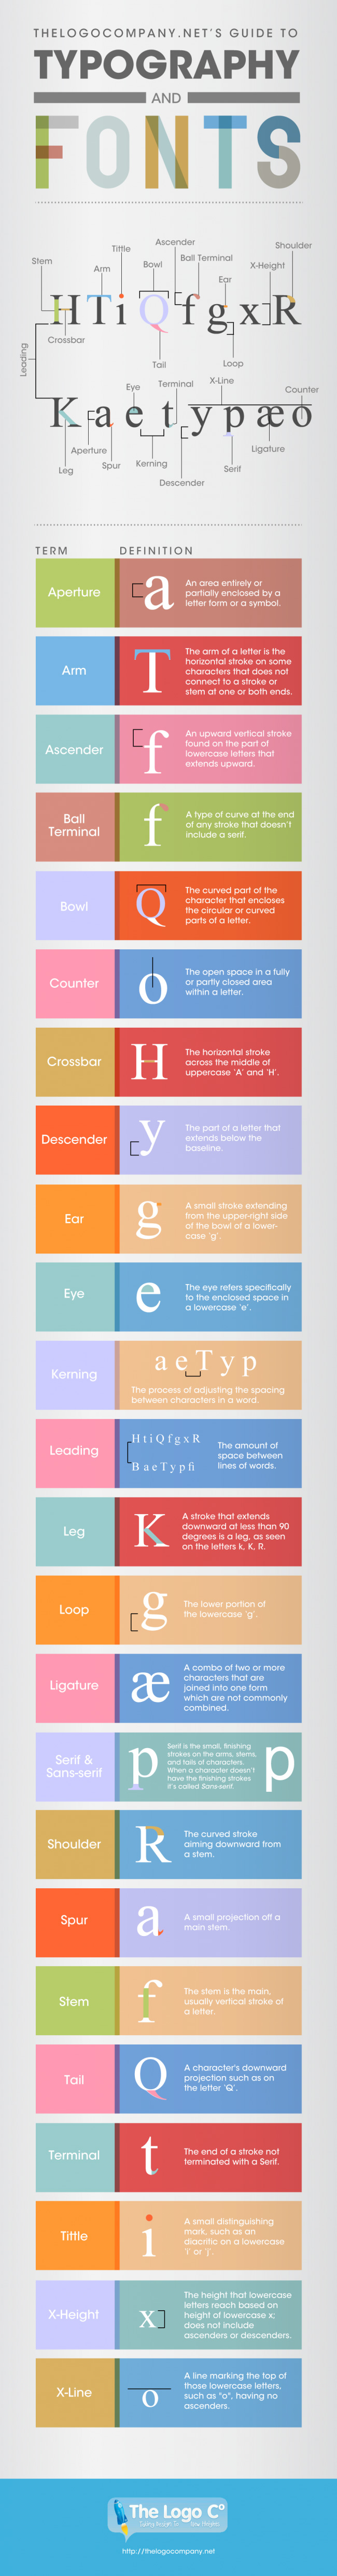 typography-and-fonts-02